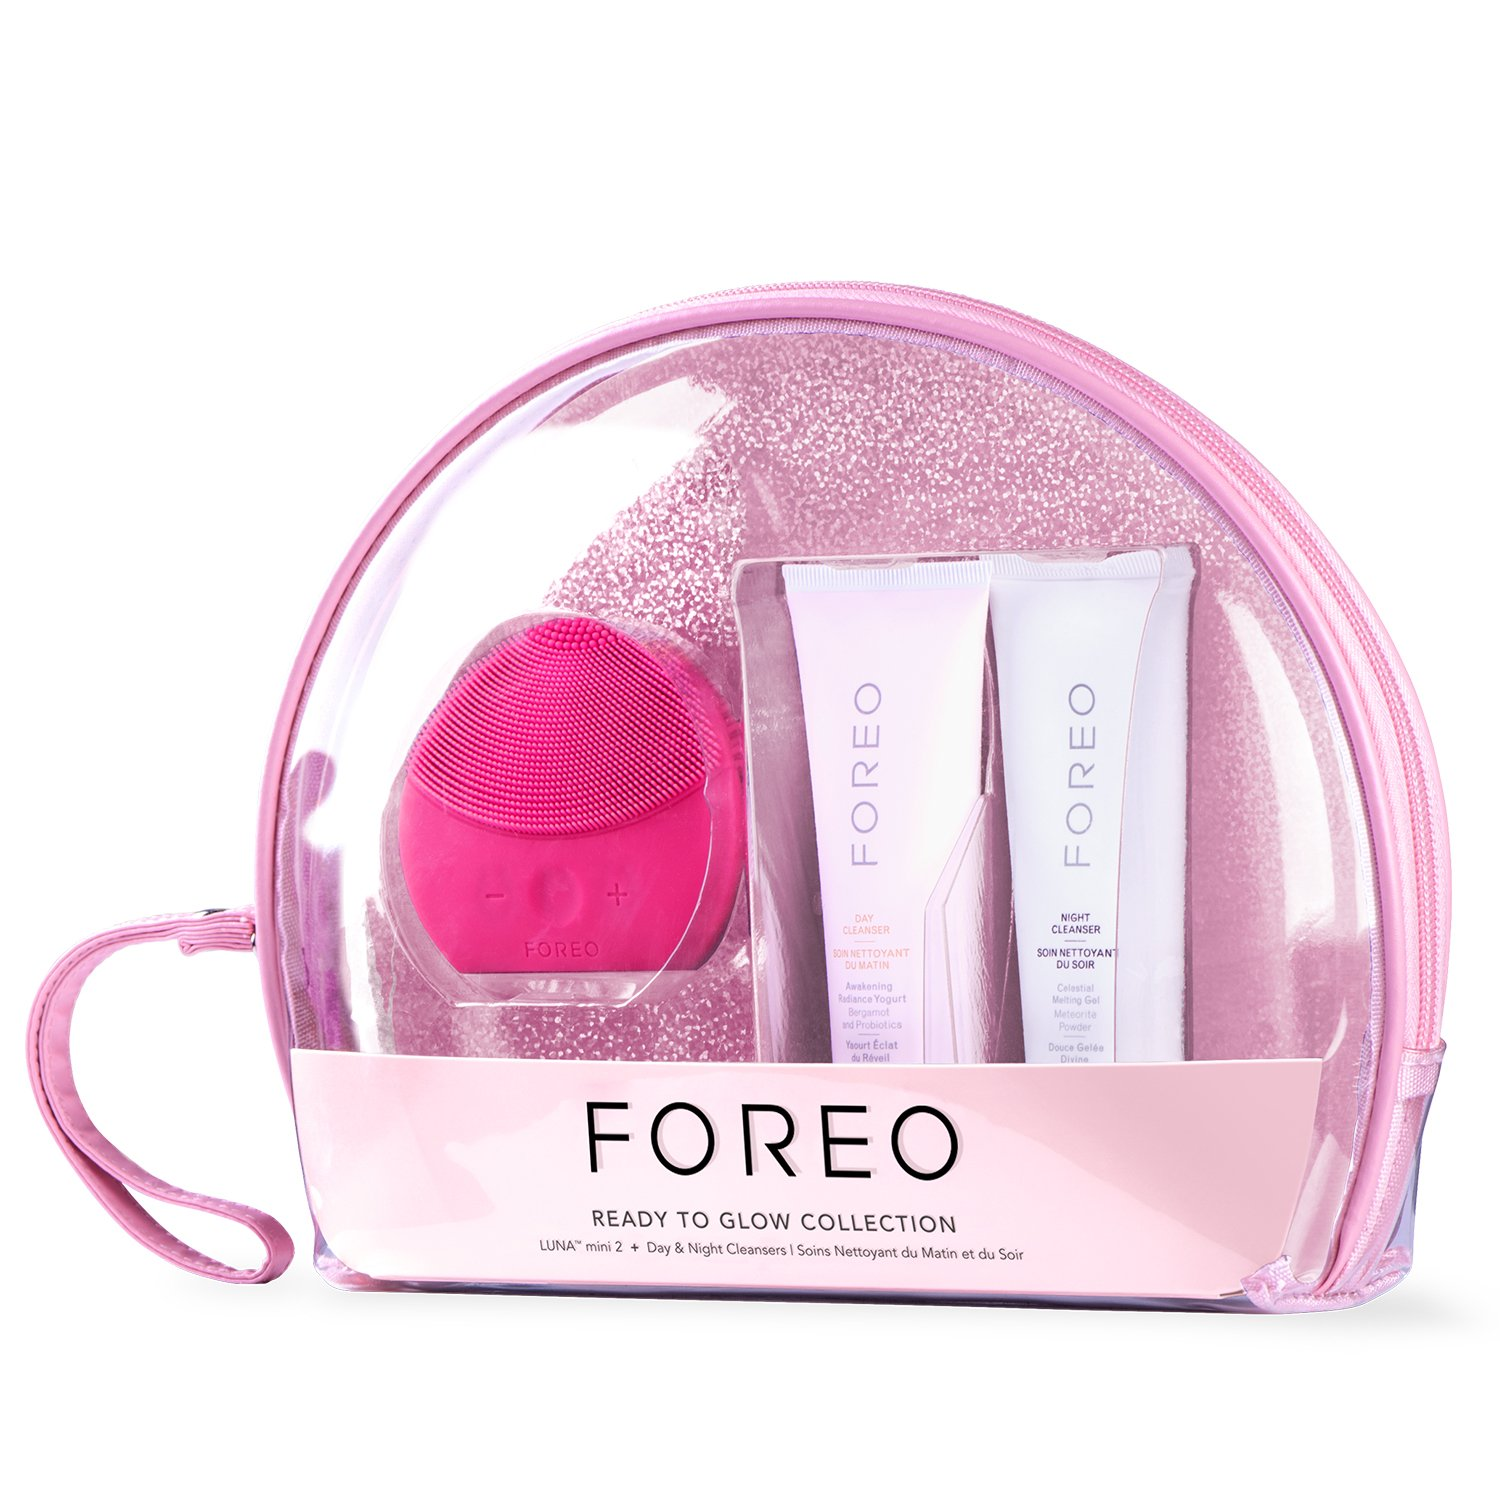 FOREO 'READY TO GLOW' Skin Care Gift Set (Includes LUNA mini 2 Facial Cleansing Brush + 60 ml Day and Night Cleansers)